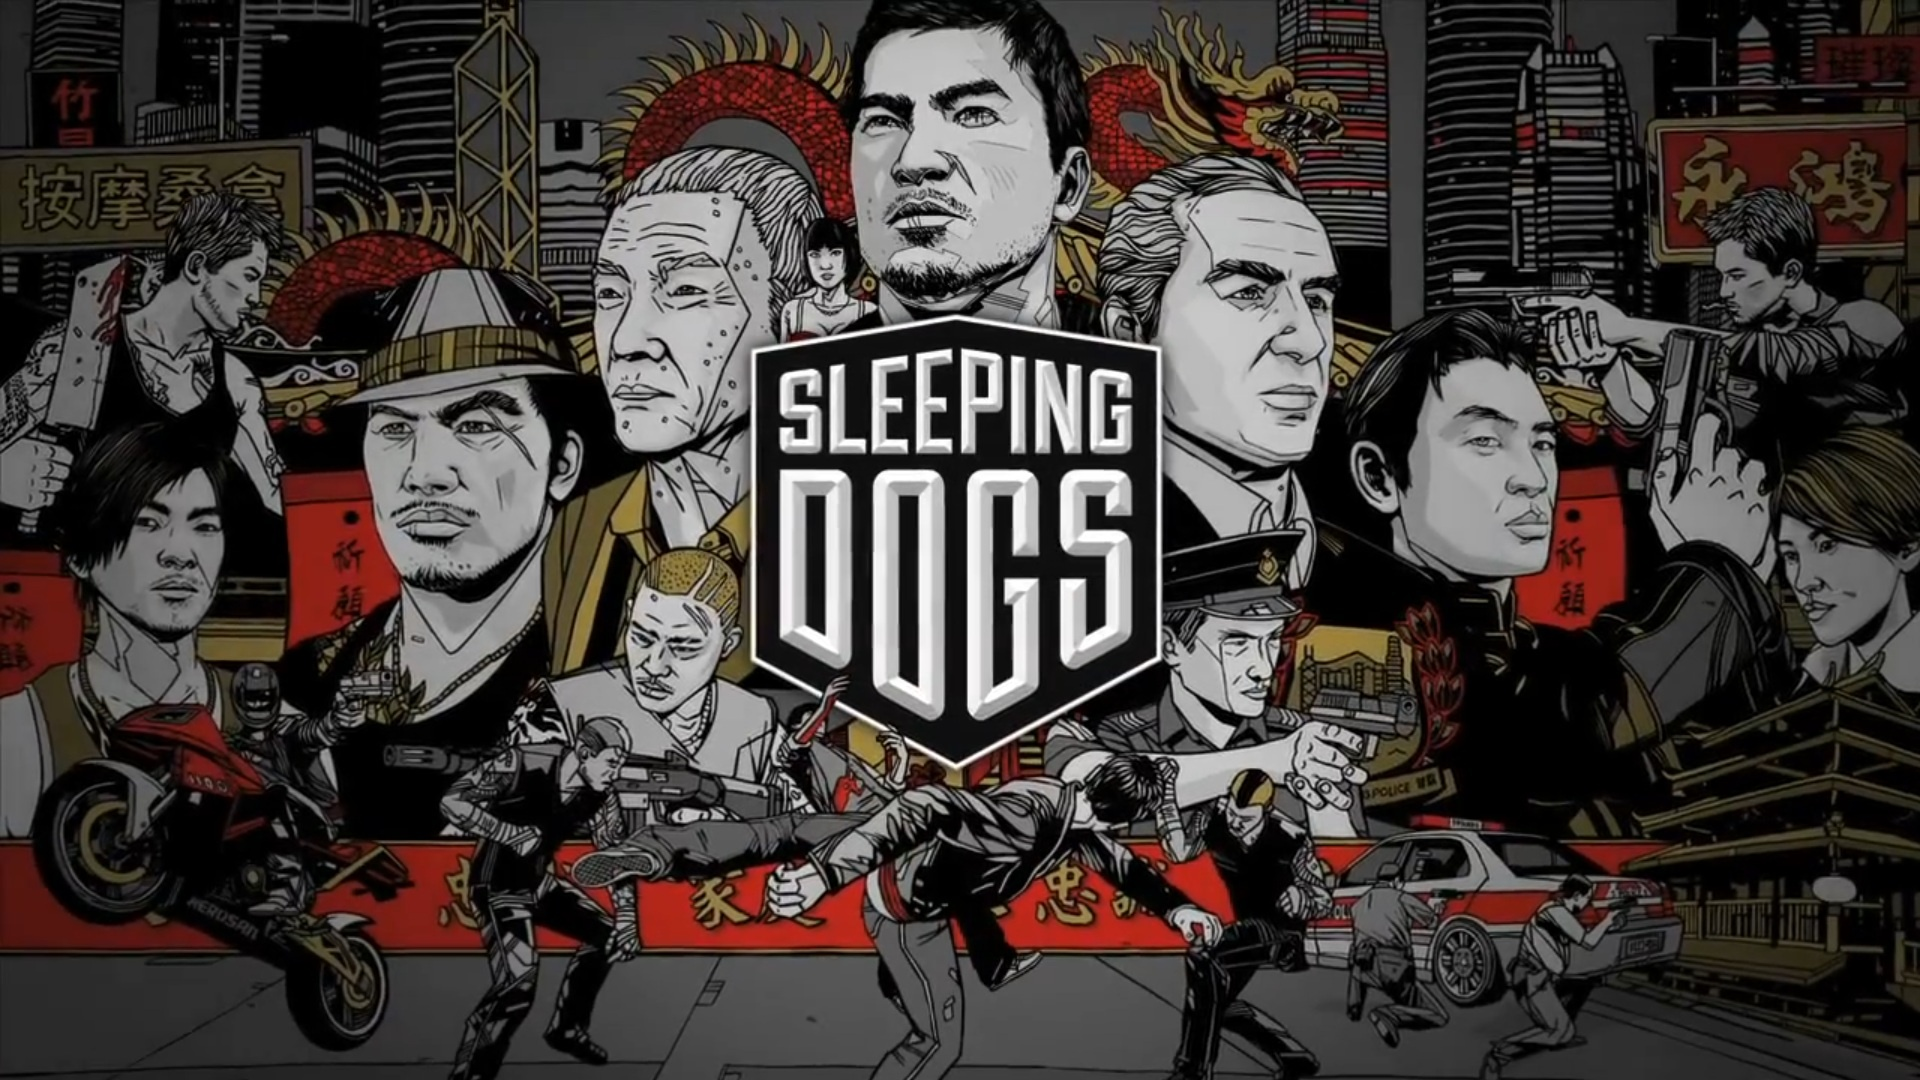 Sleeping Dogs Video Game Wallpapers   1920x1080   630689 1920x1080